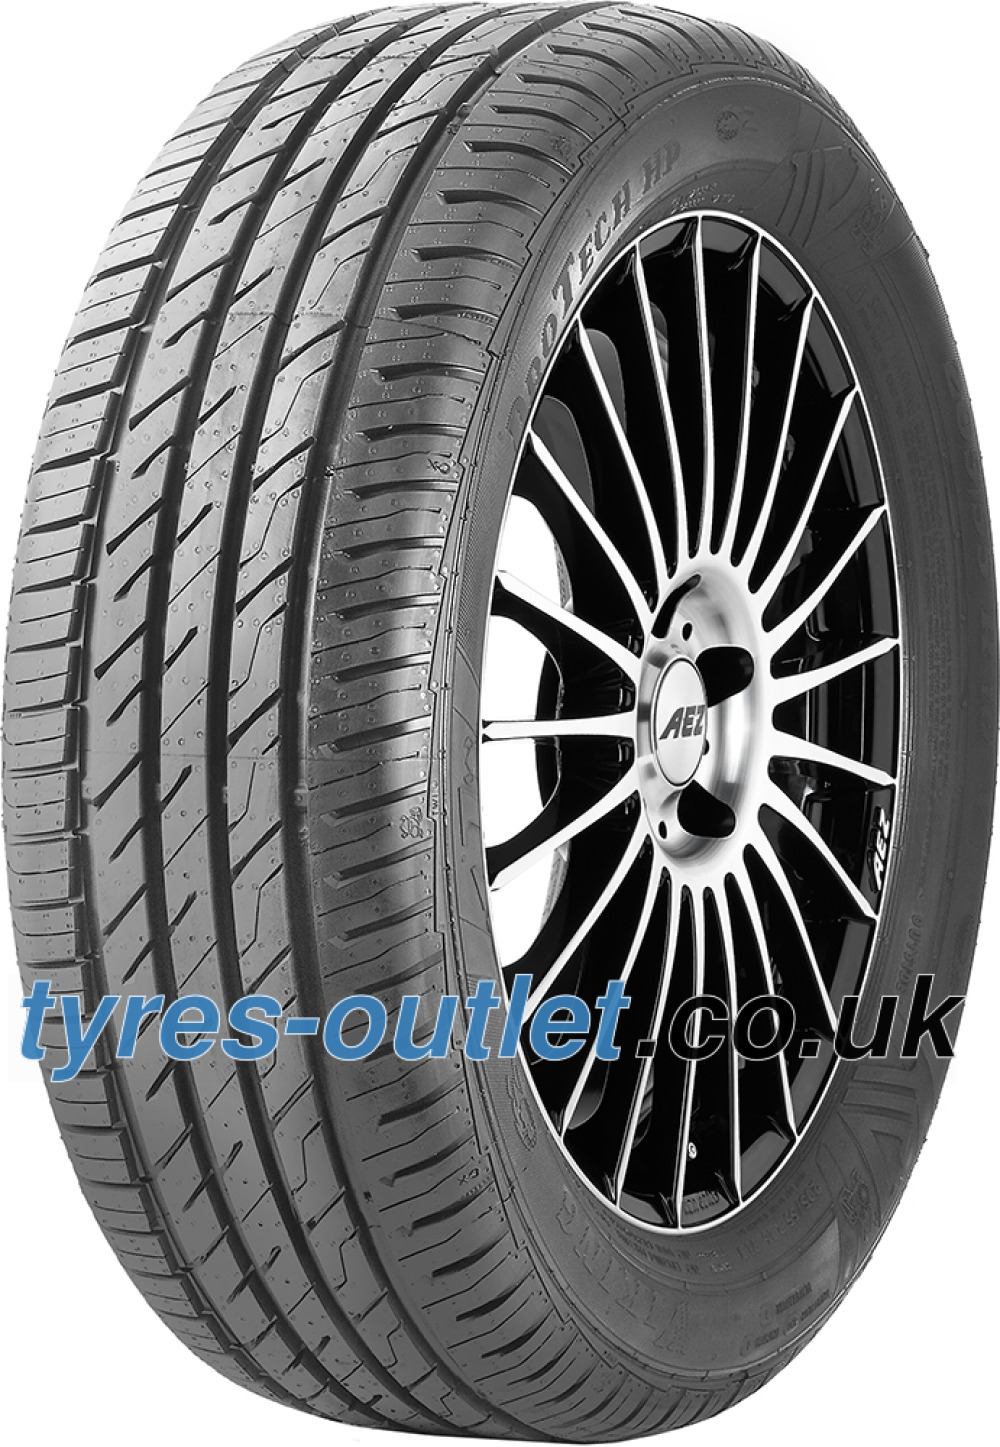 Viking ProTech HP ( 205/55 R17 95V XL with kerbing rib )